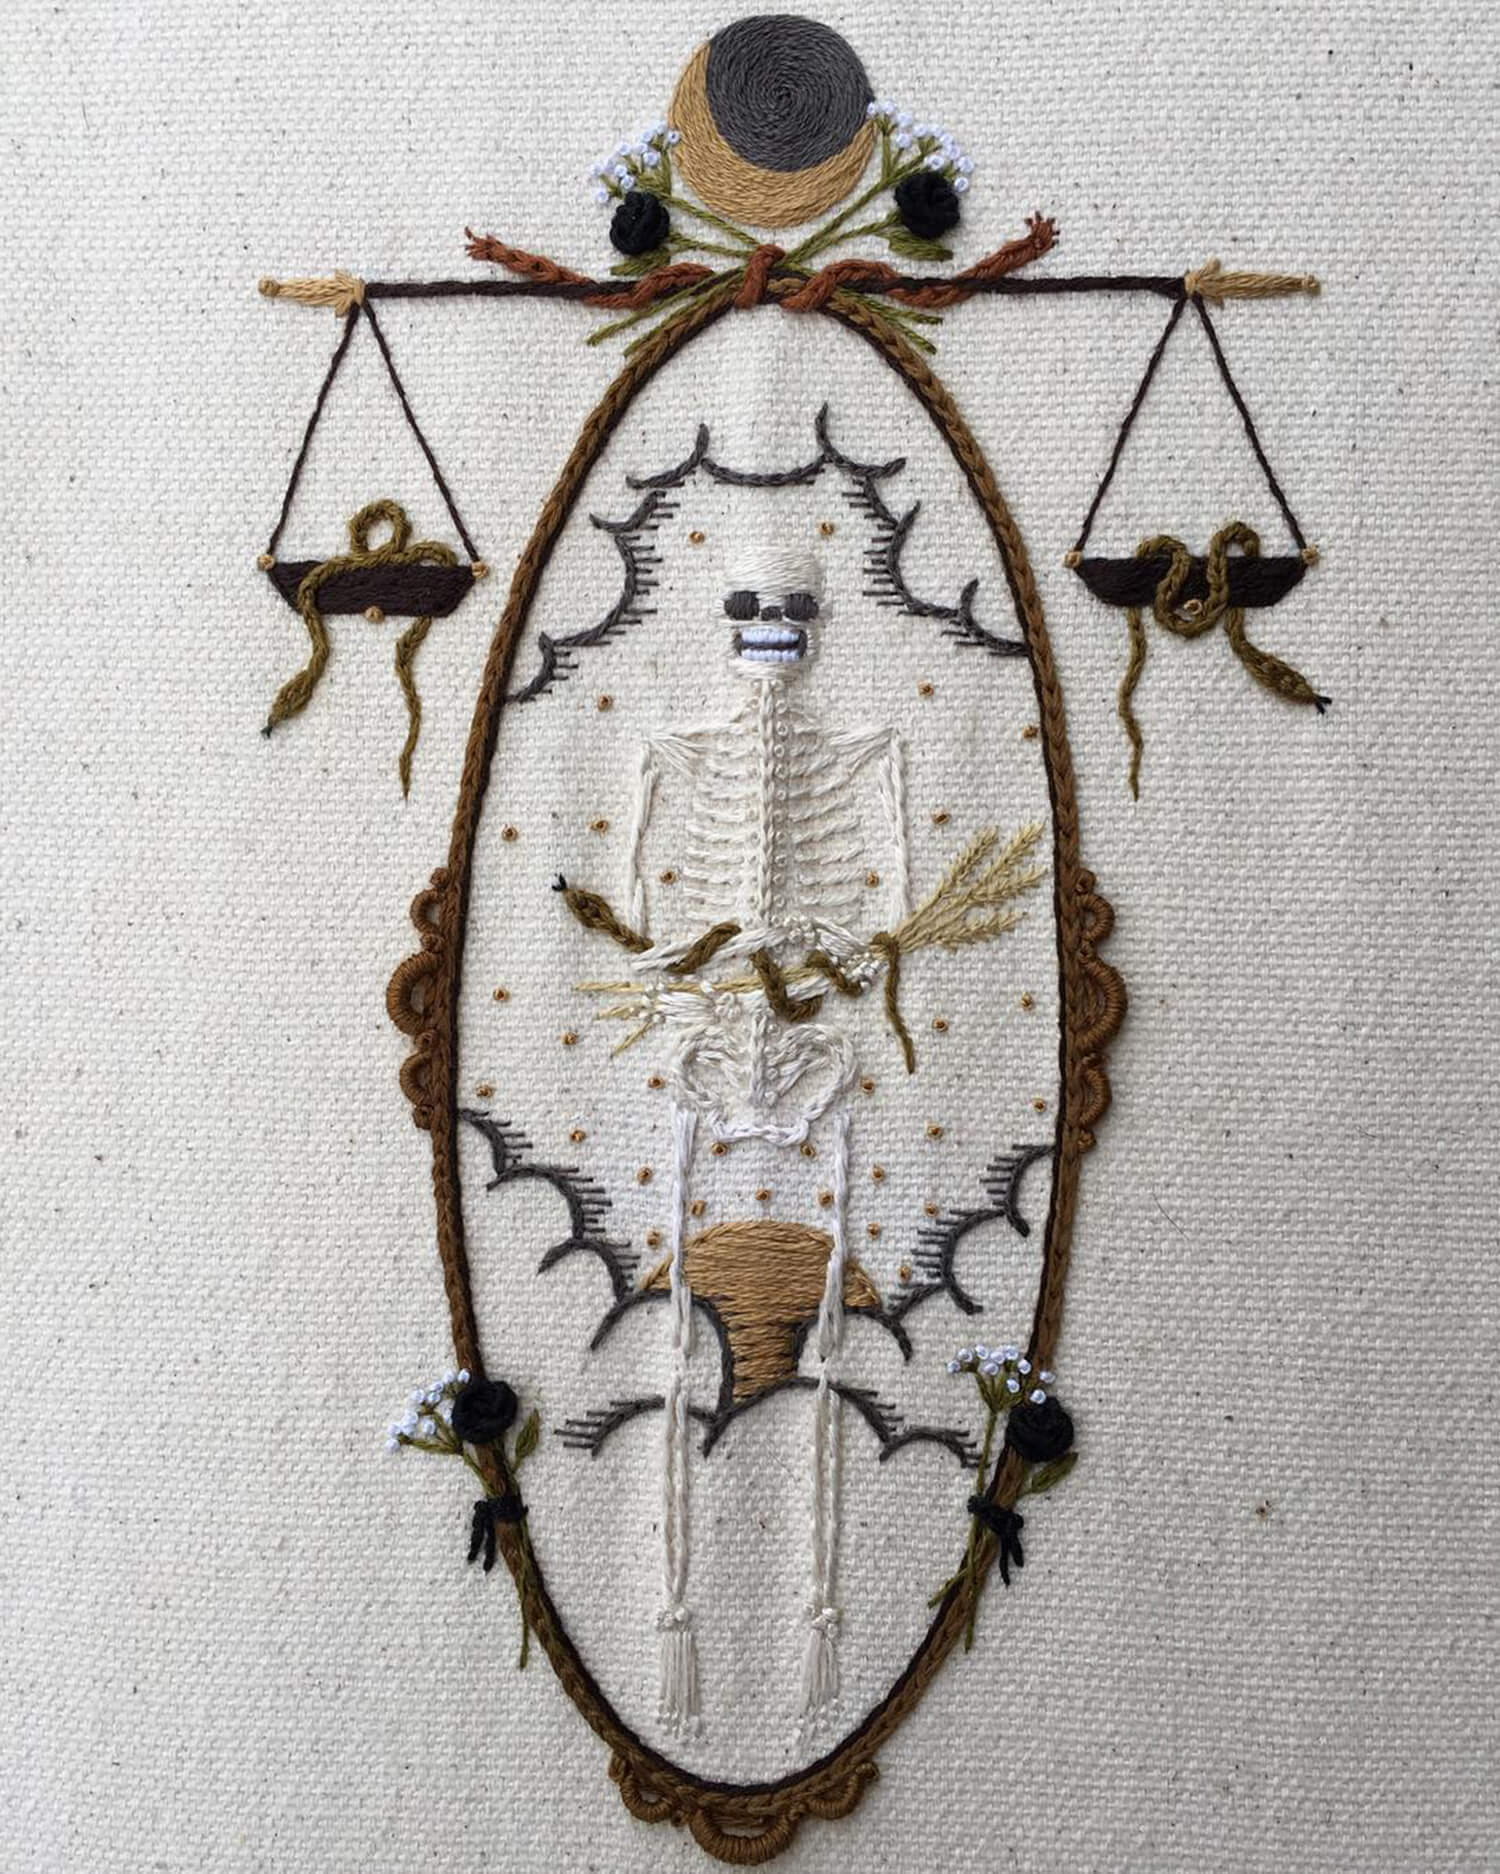 stitched skeleton portrait surrounded by scales